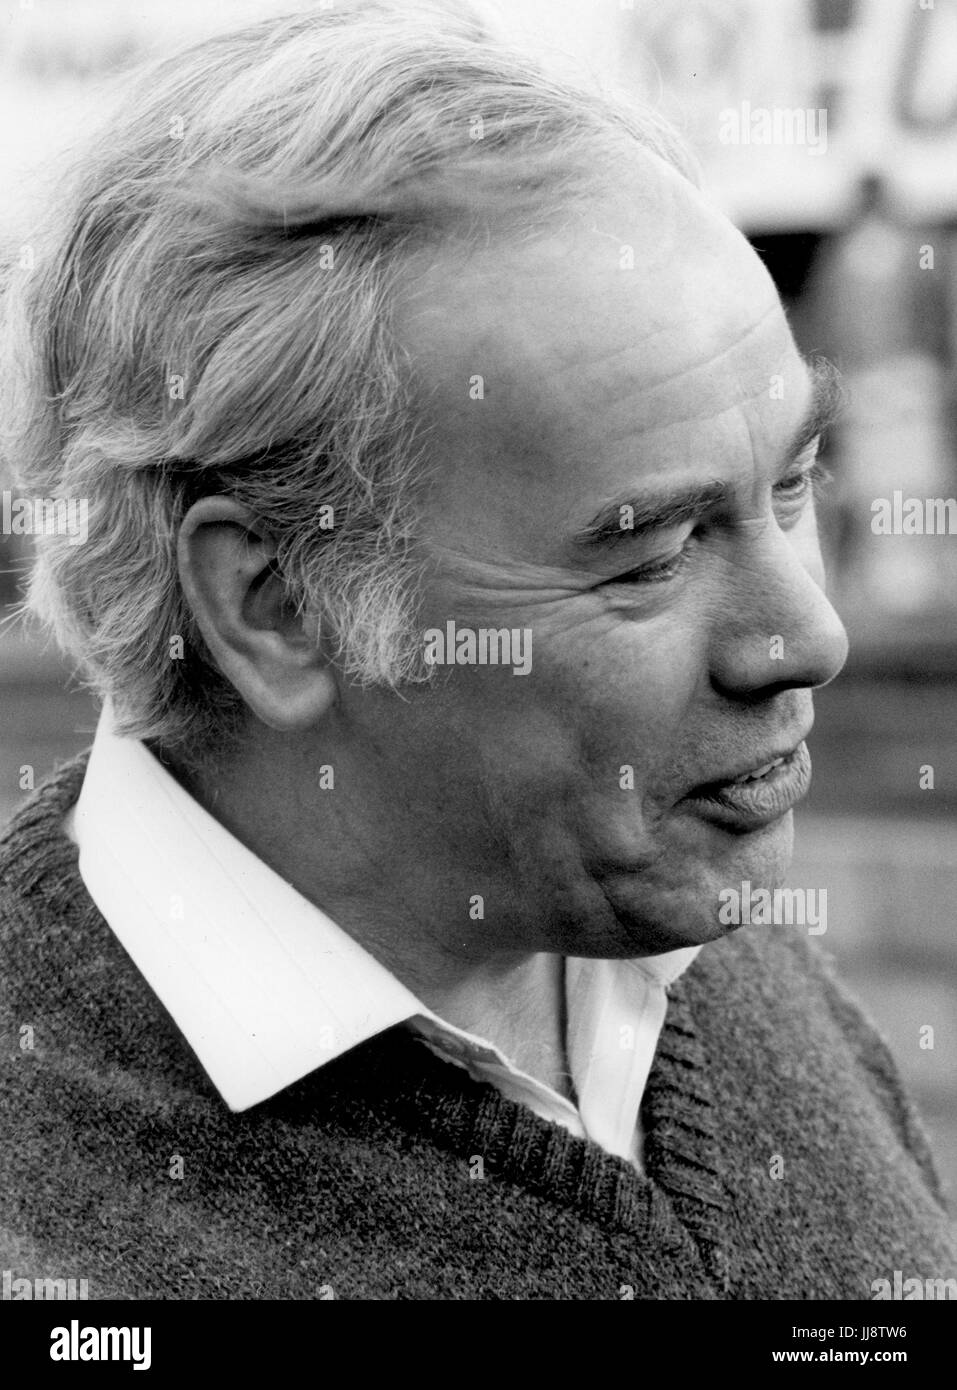 Keith Duckworth of Cosworth in 1988 - Stock Image